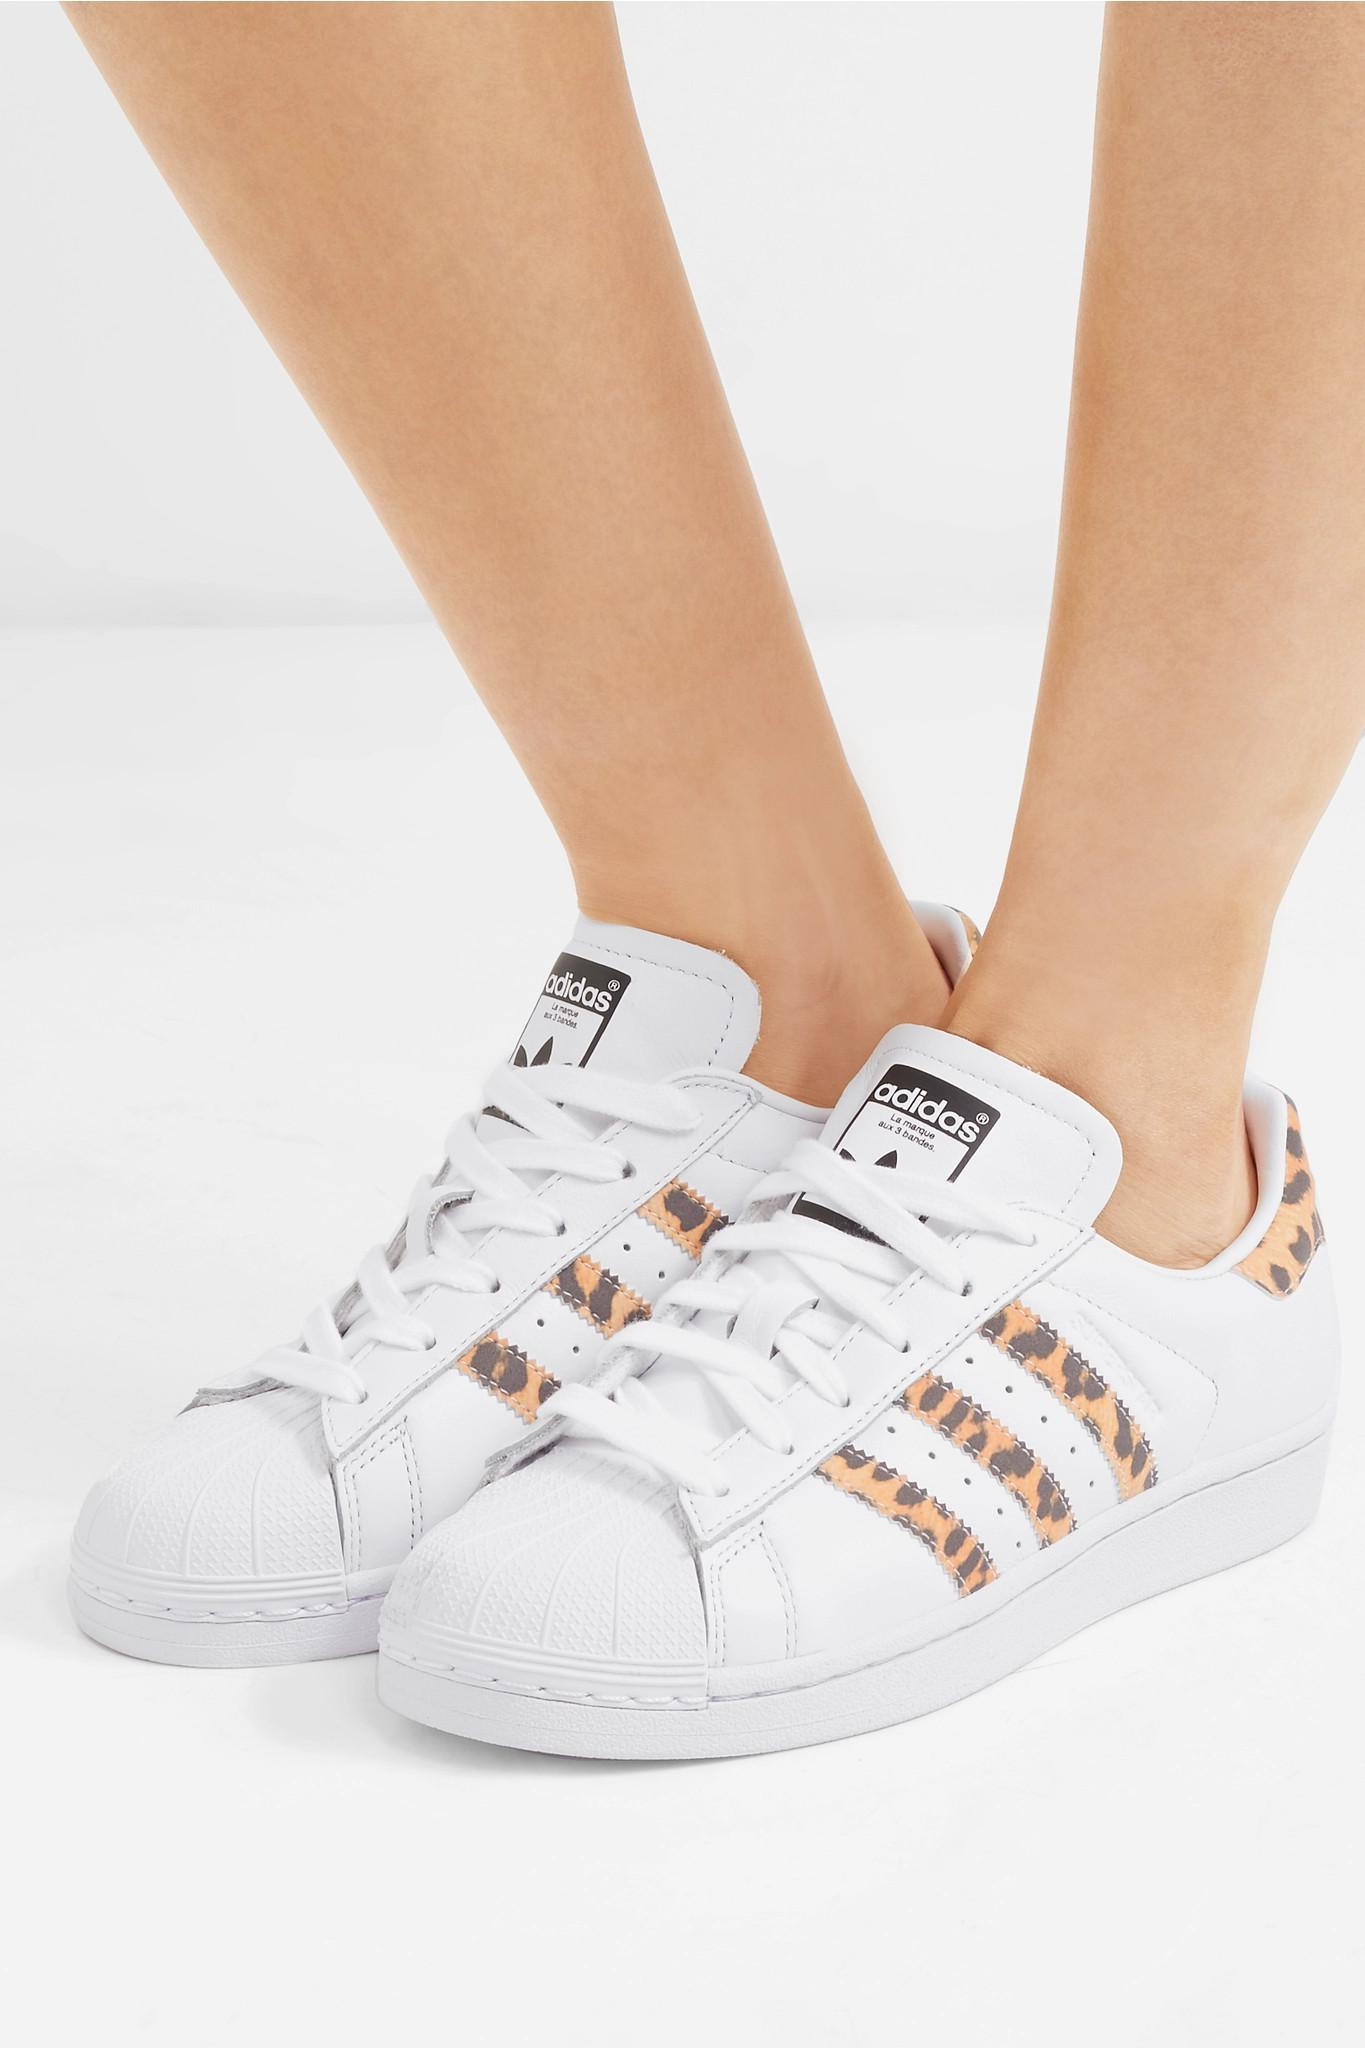 78872fc37 Adidas Originals - White Superstar Leopard Print-trimmed Leather Sneakers -  Lyst. View fullscreen